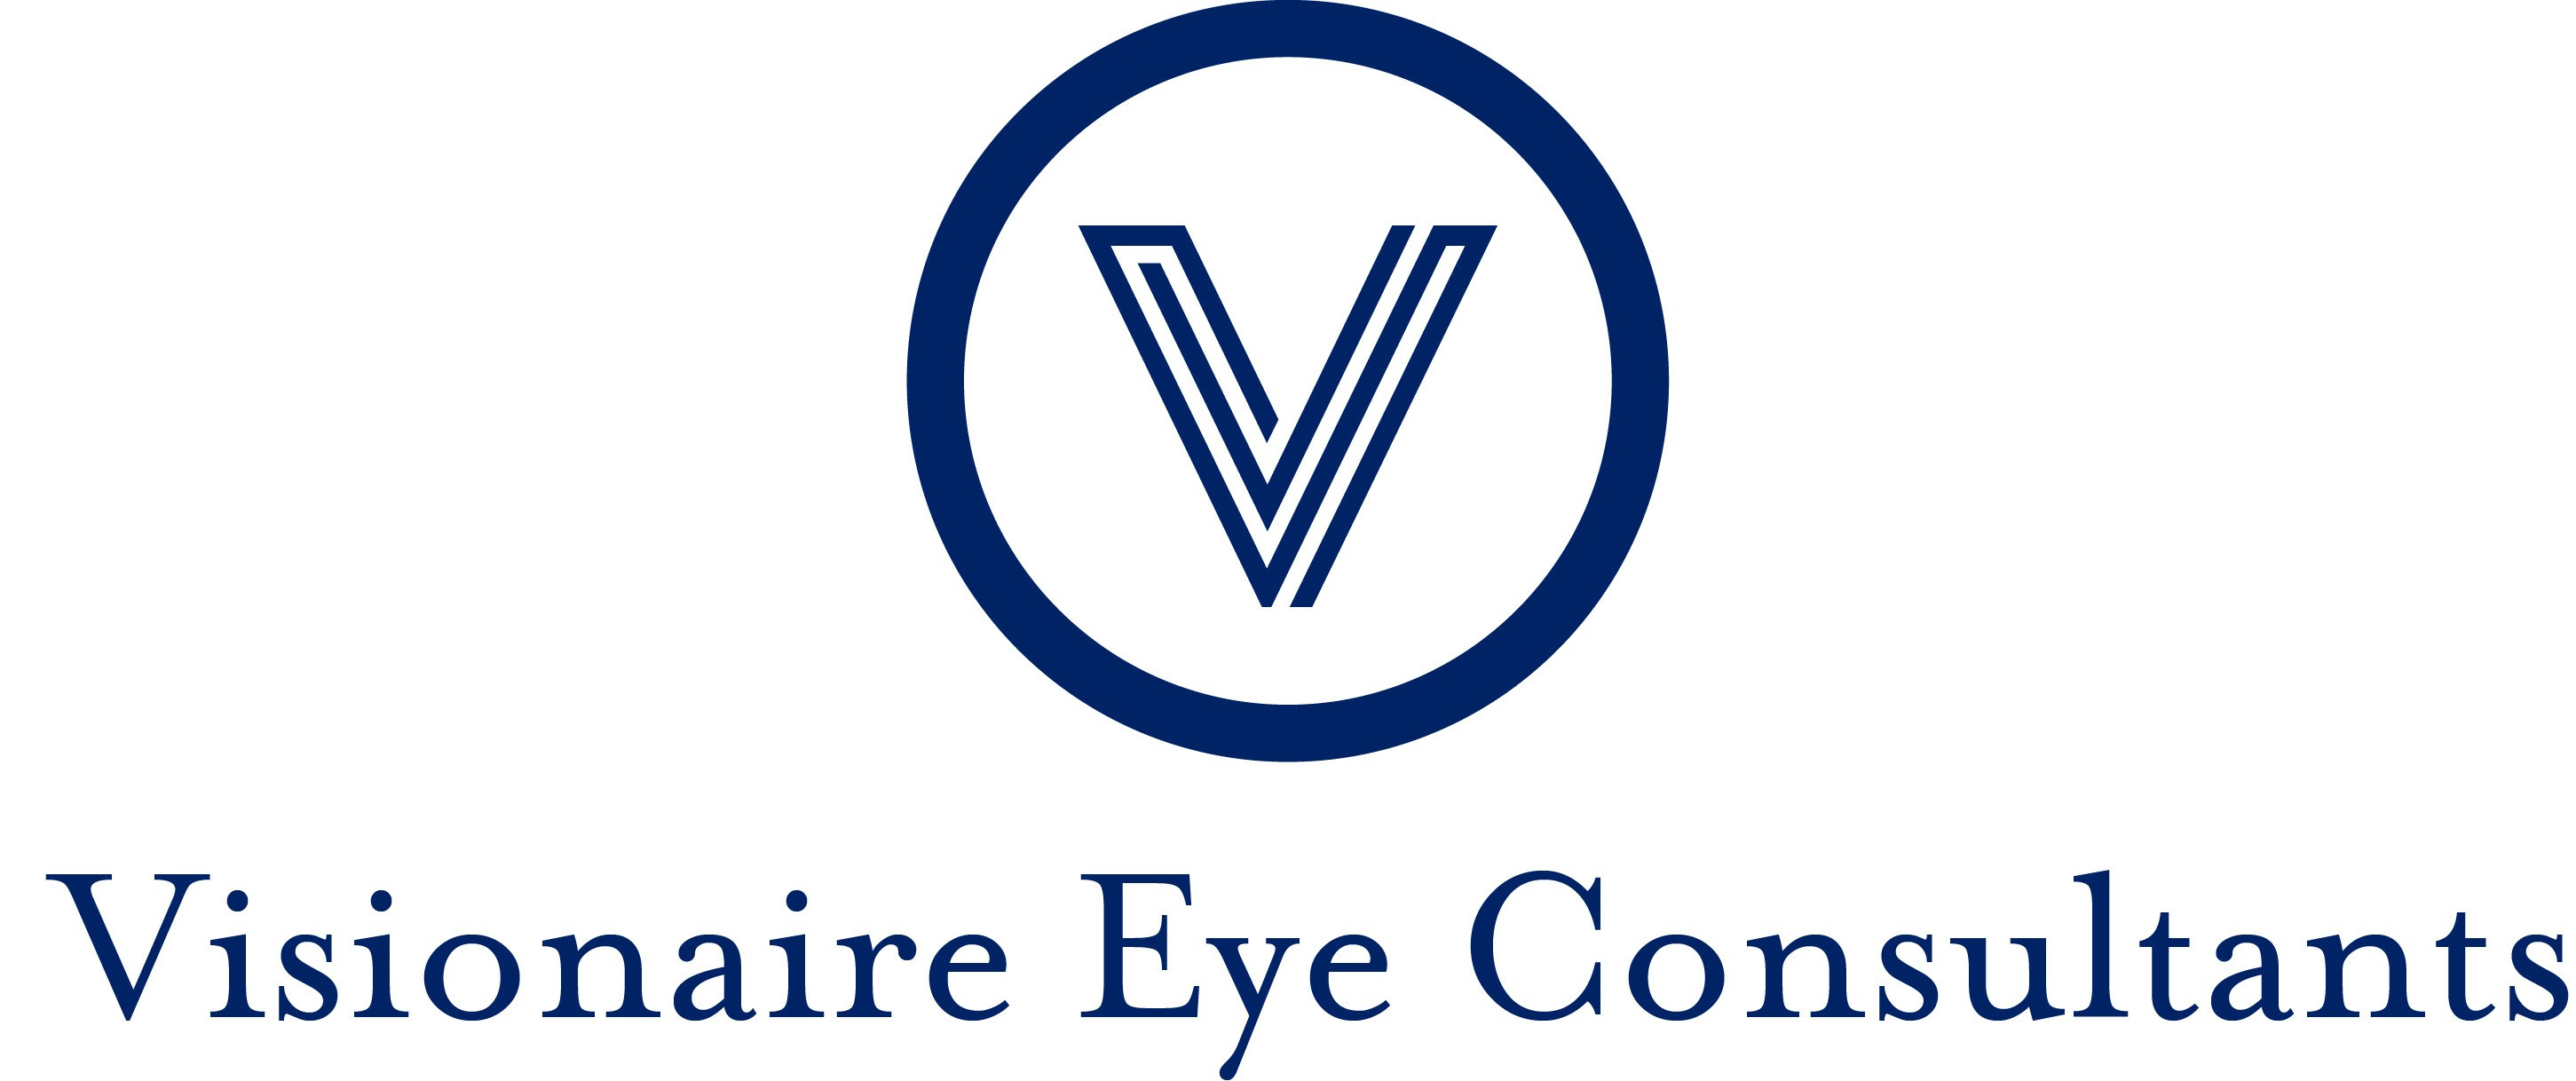 Visionaire Eye Consultants Logo